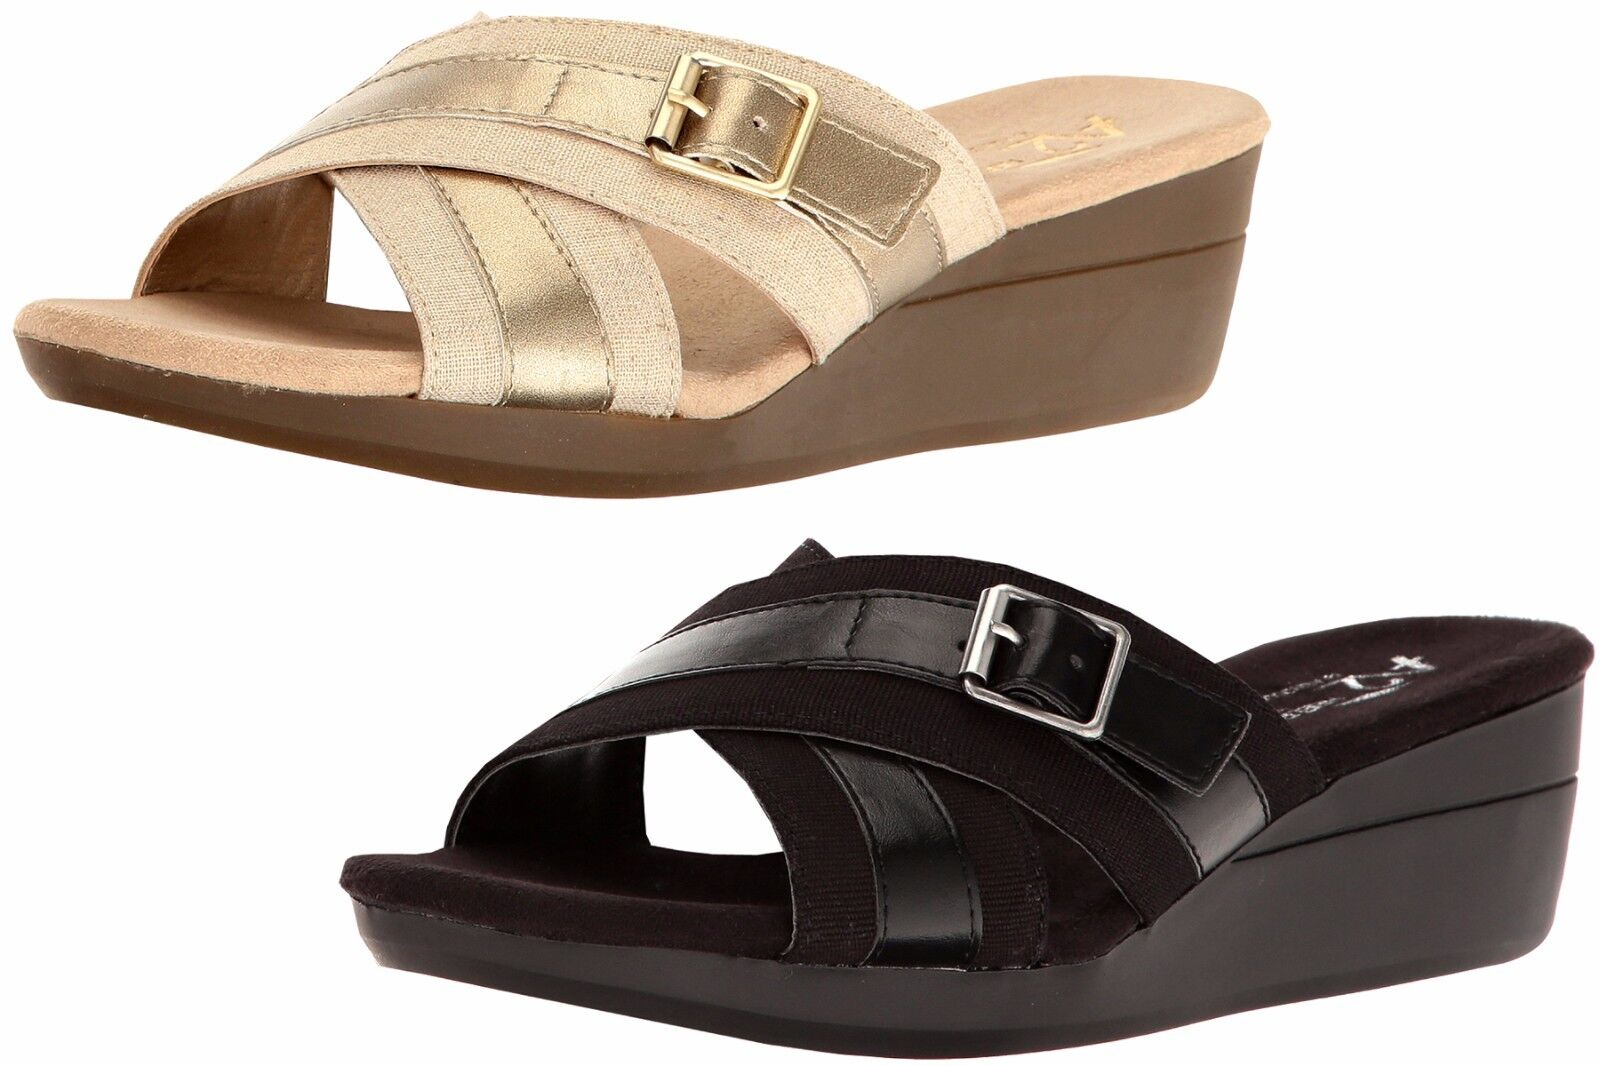 NAOT Womens 10 10 Womens / 41 Metallic Strappy Leather Sandals Jewel Open Toe Slides qi9 19428e